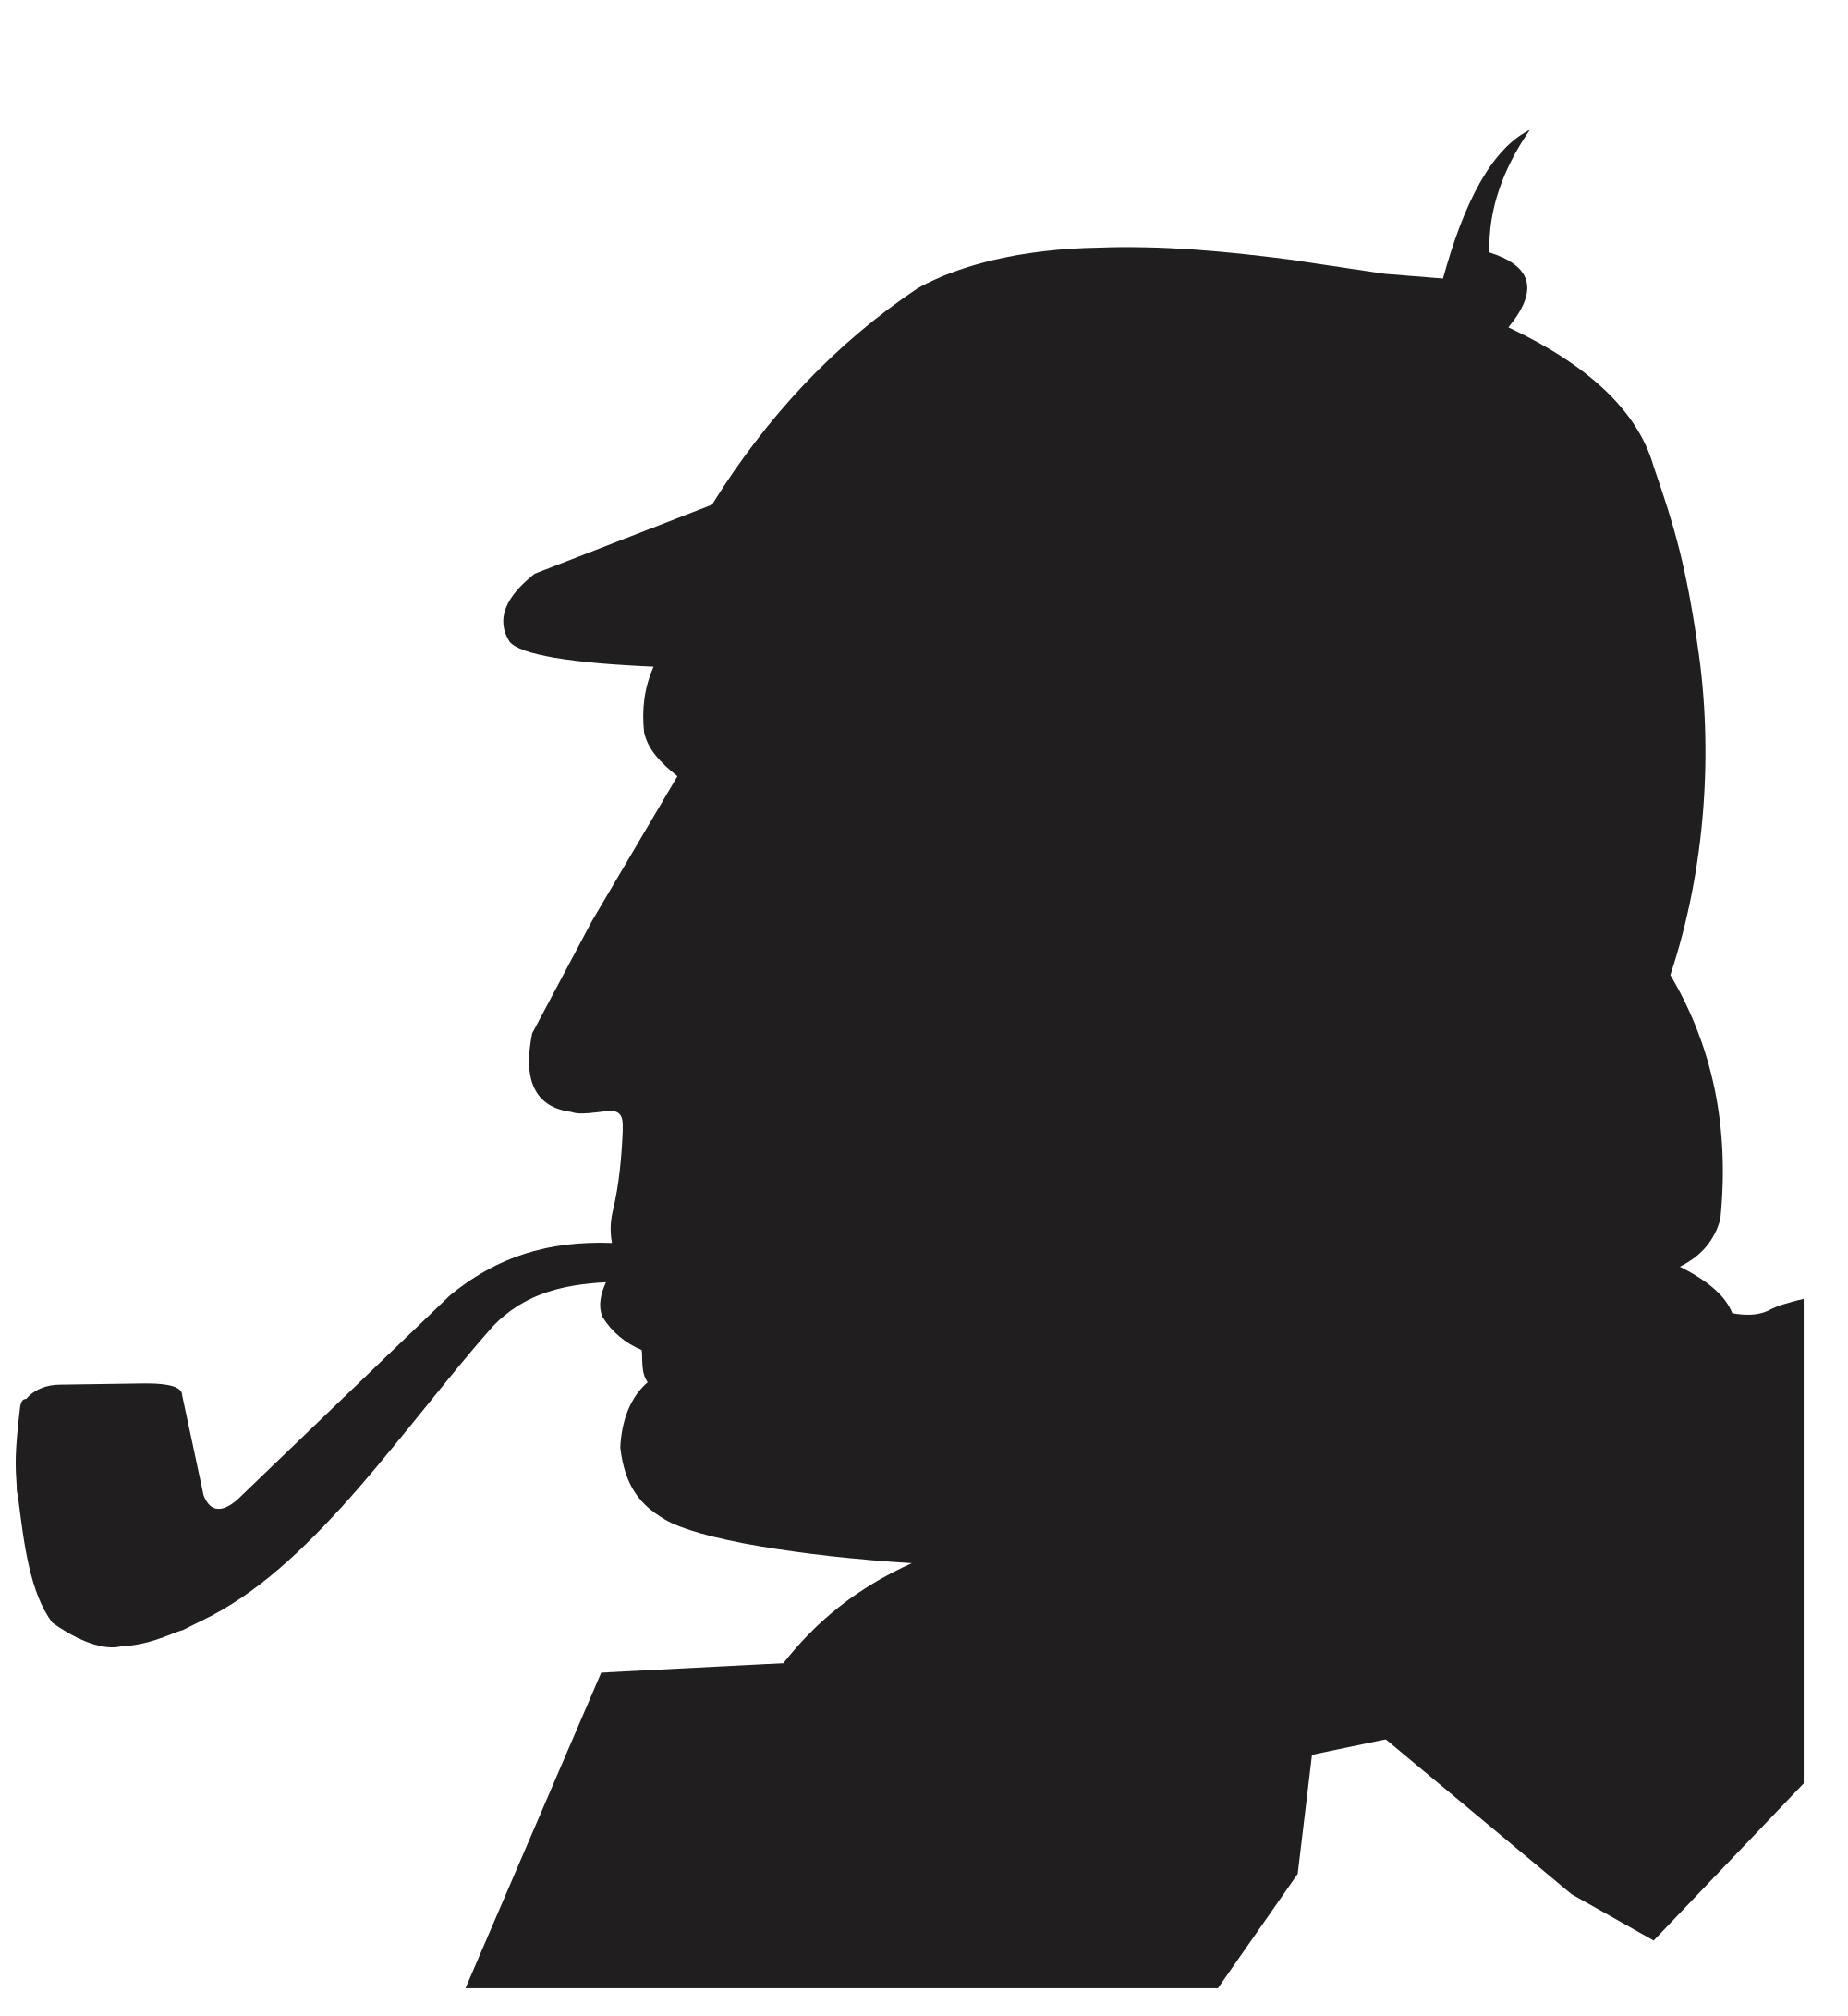 Silhouette free at getdrawings. Detective clipart sherlock holmes pipe